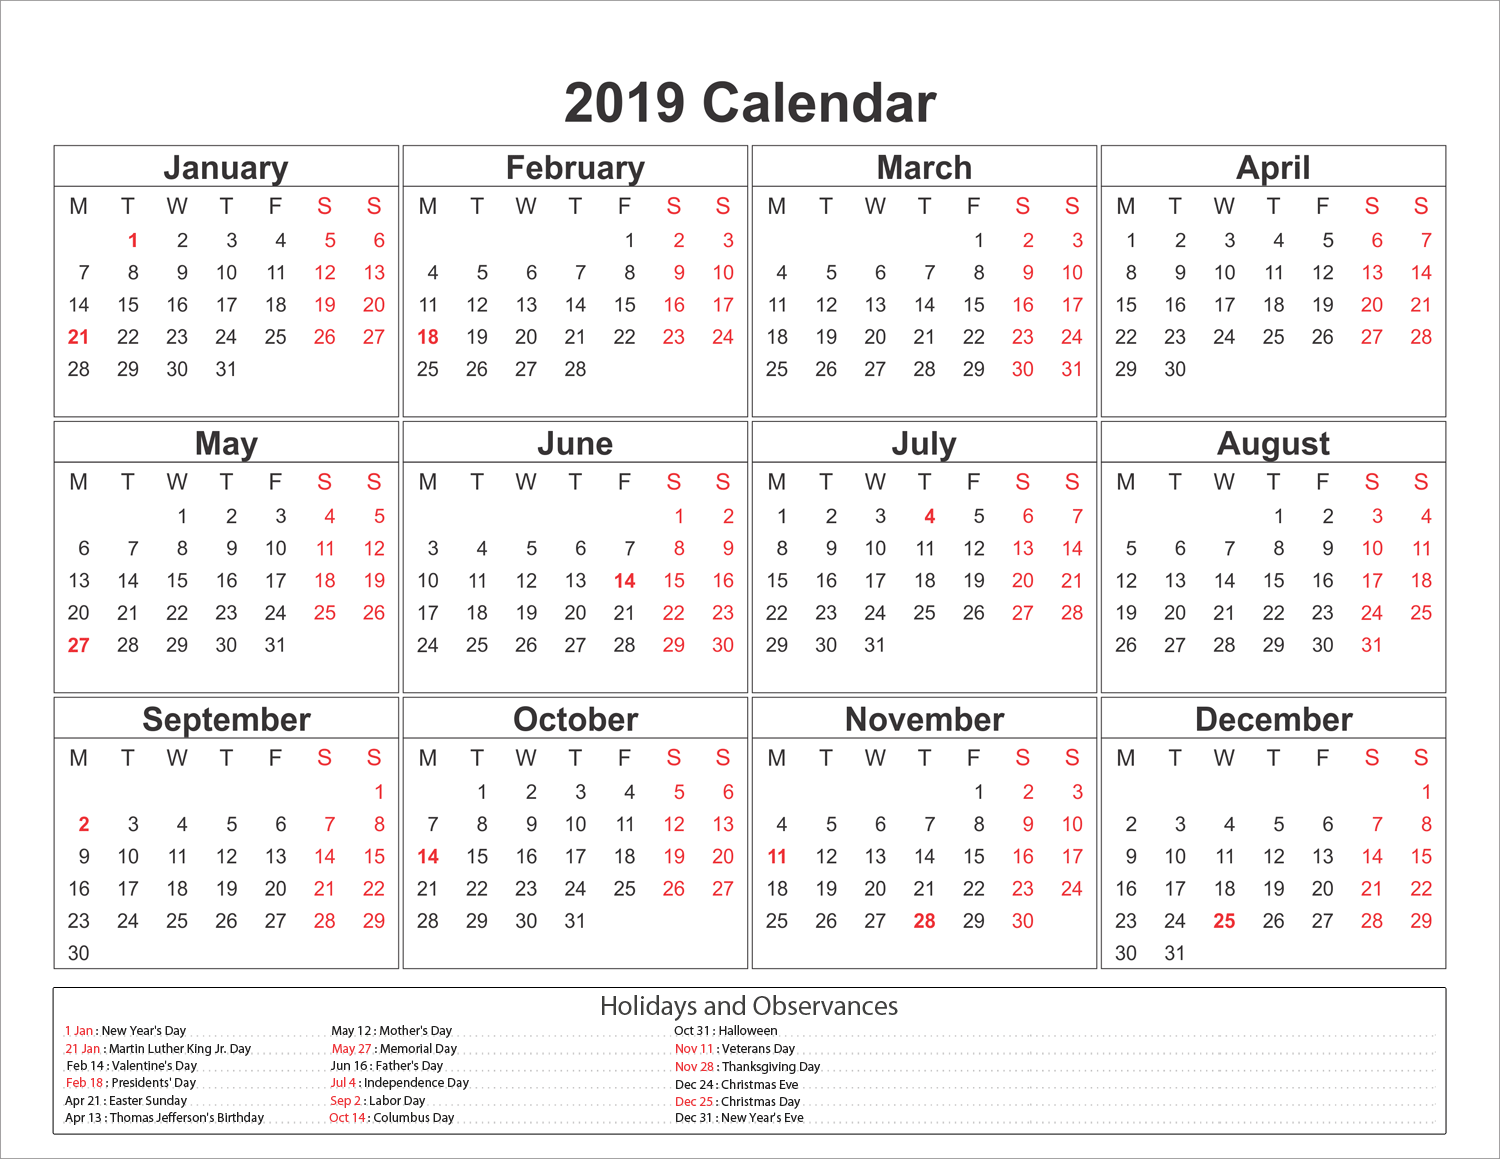 Next Year Calendar 2019 Sri Lanka With Free Yearly Printable PDF Template April 2018